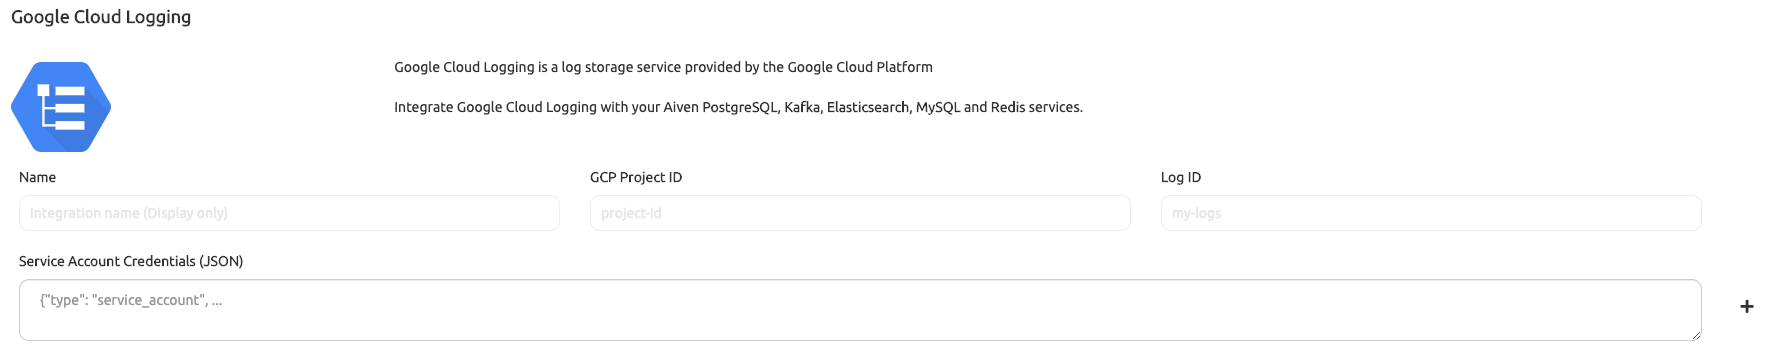 google cloud logging access rights fixed